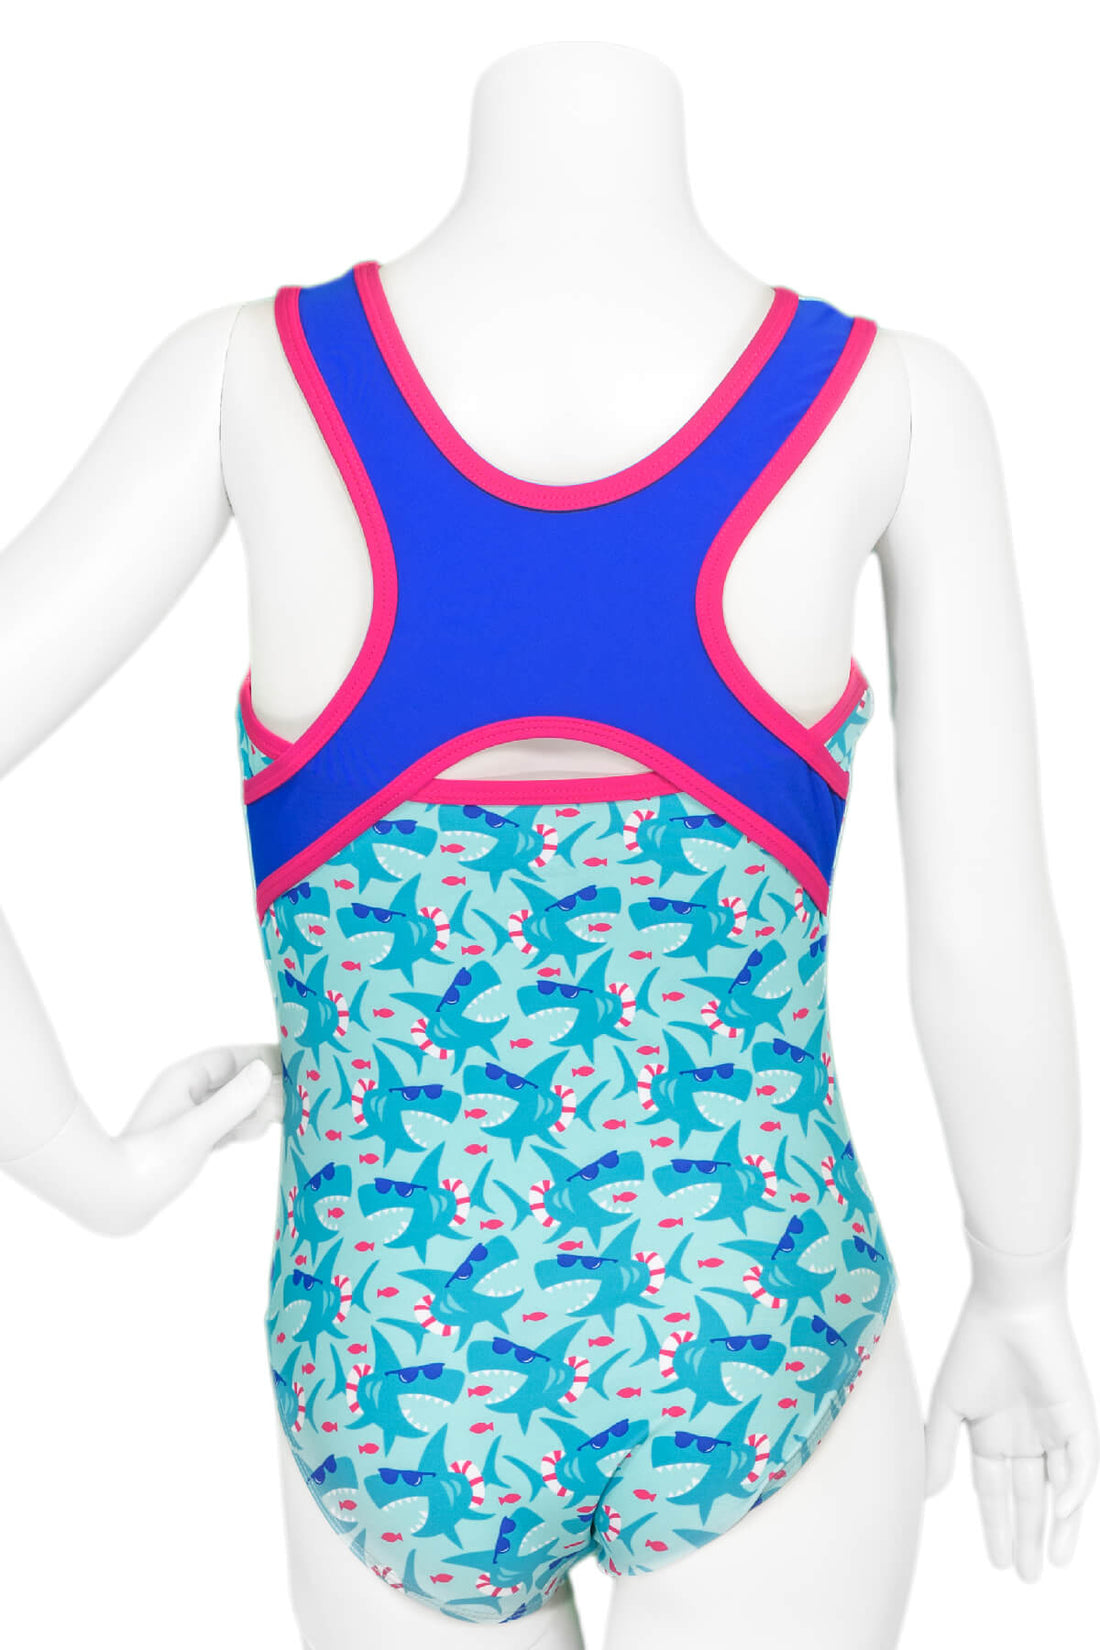 Shark Party Leotard